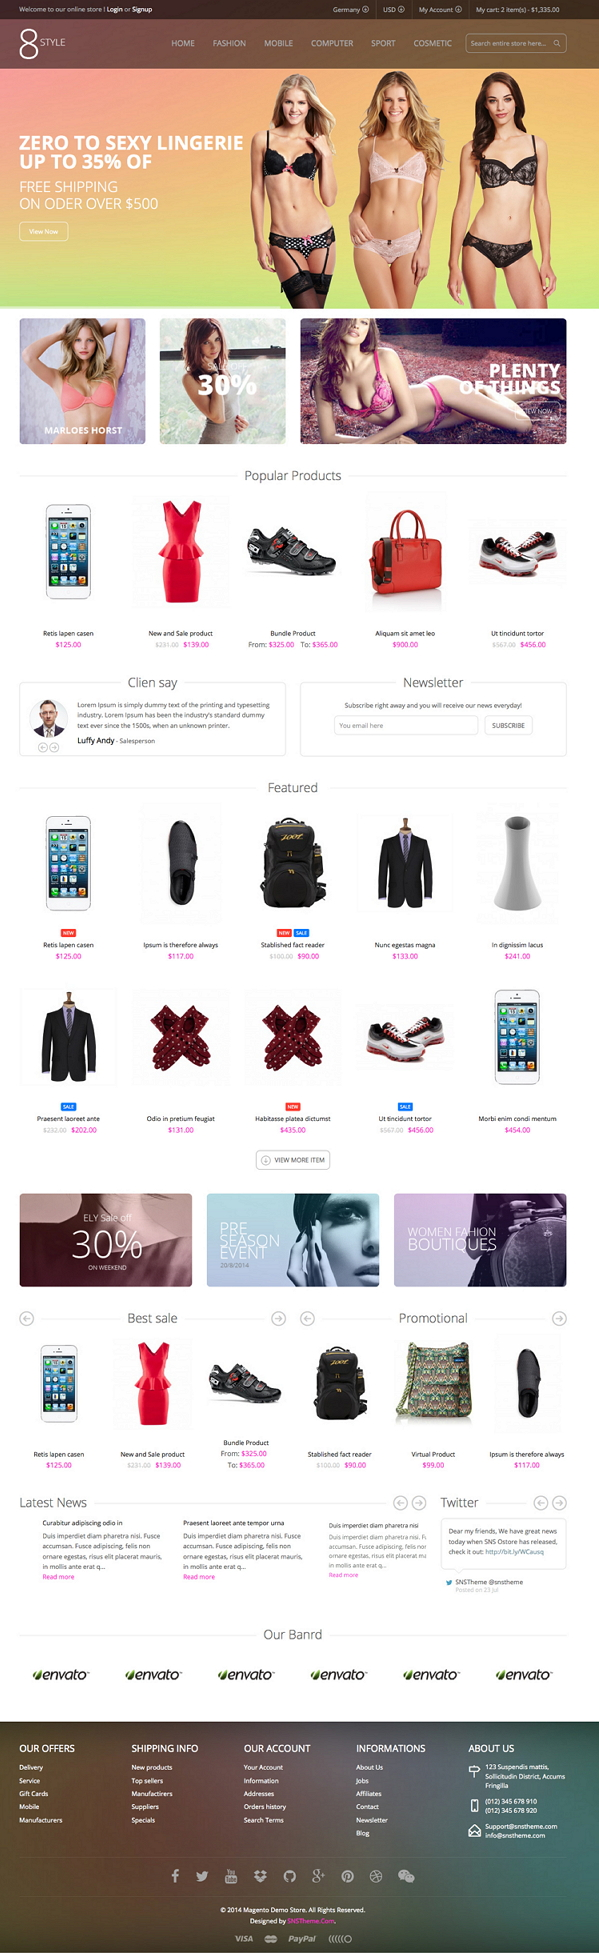 SNS I8style is an fresh and clean design new Responsive Magento Theme. It has extremely customiz ...